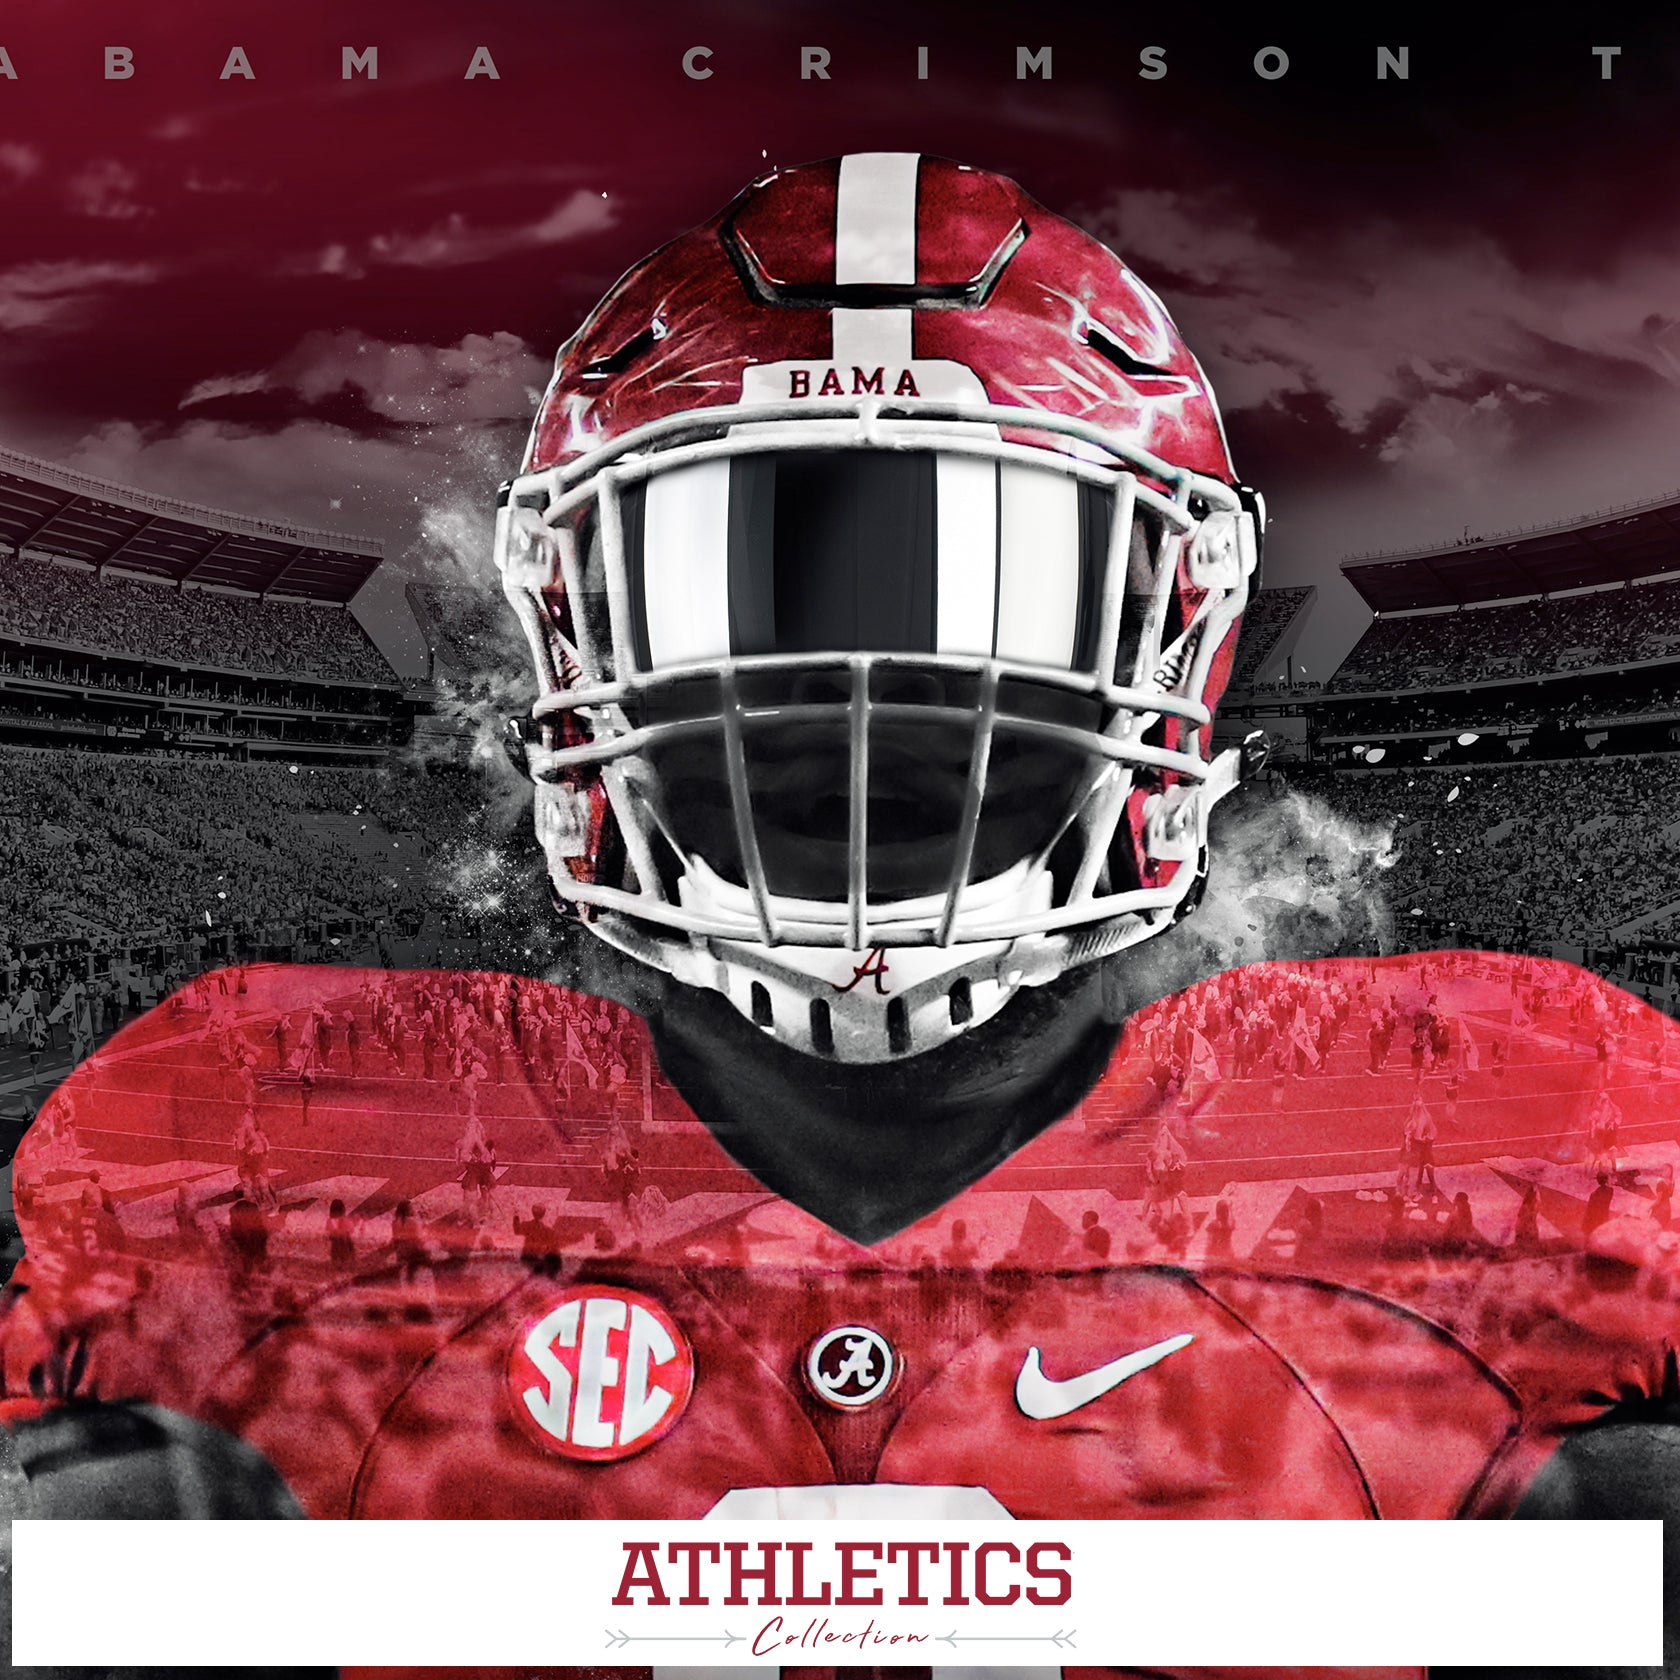 Alabama Crimson Tide - Athletics Photo Canvas Prints